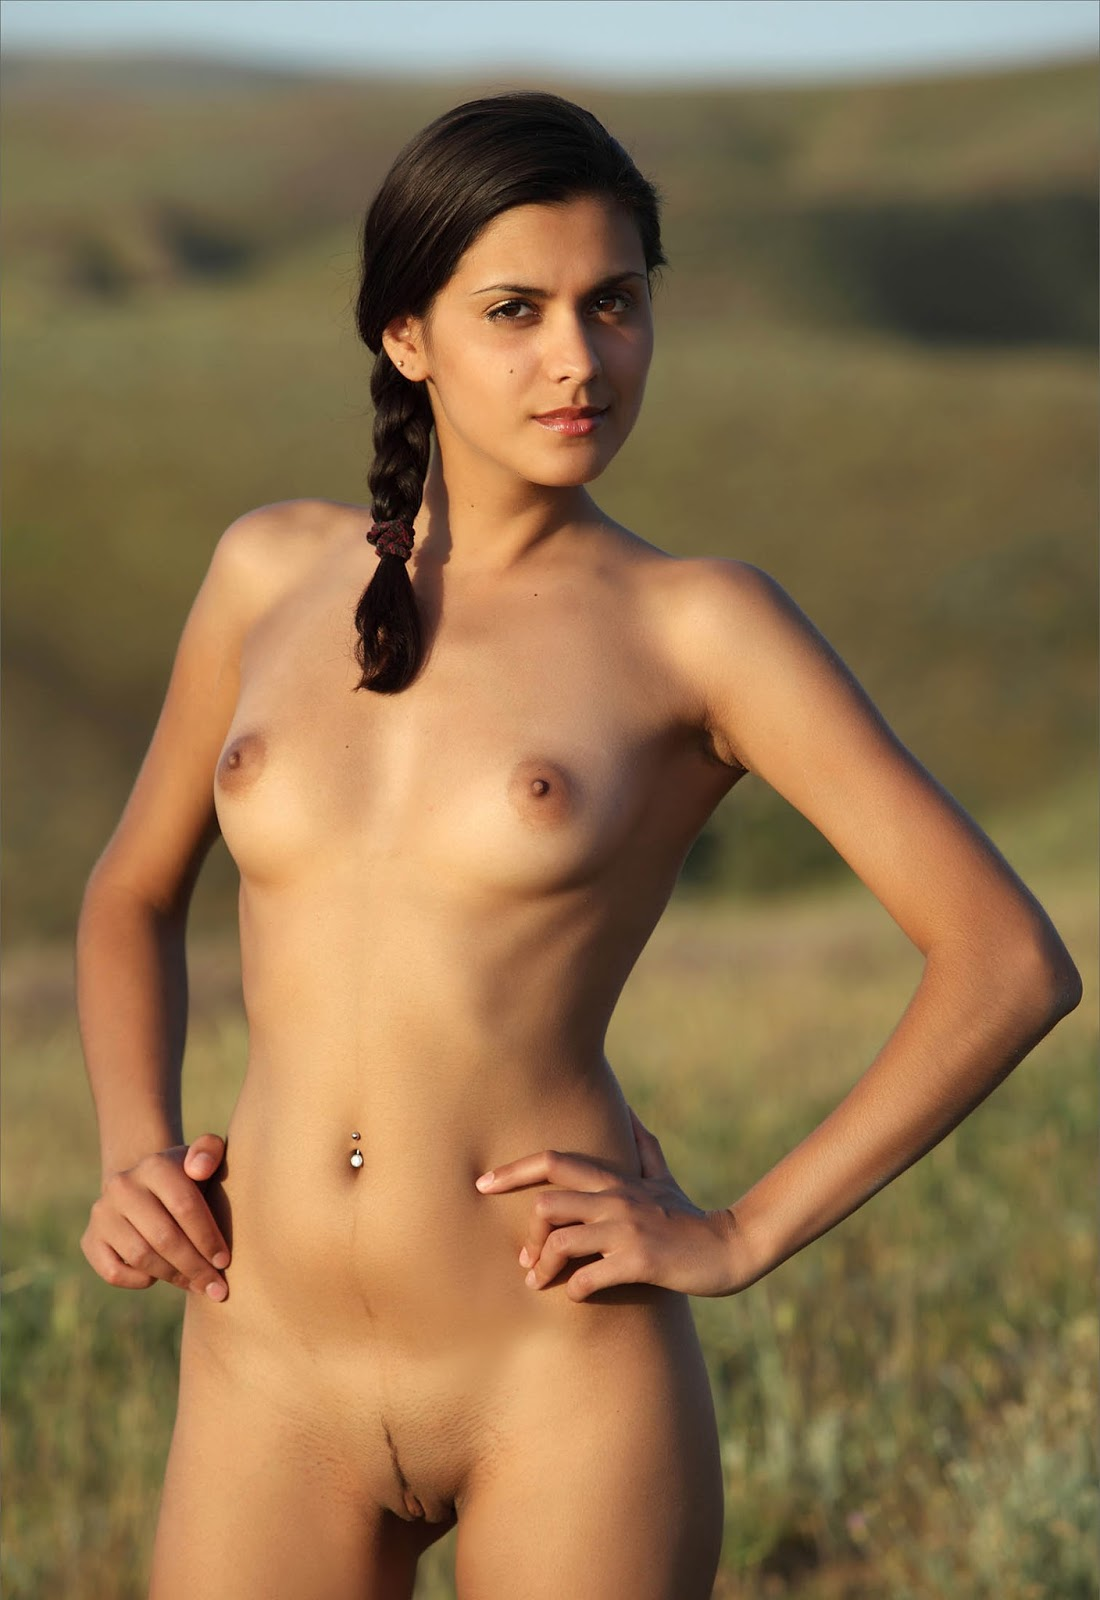 Nude desi woman